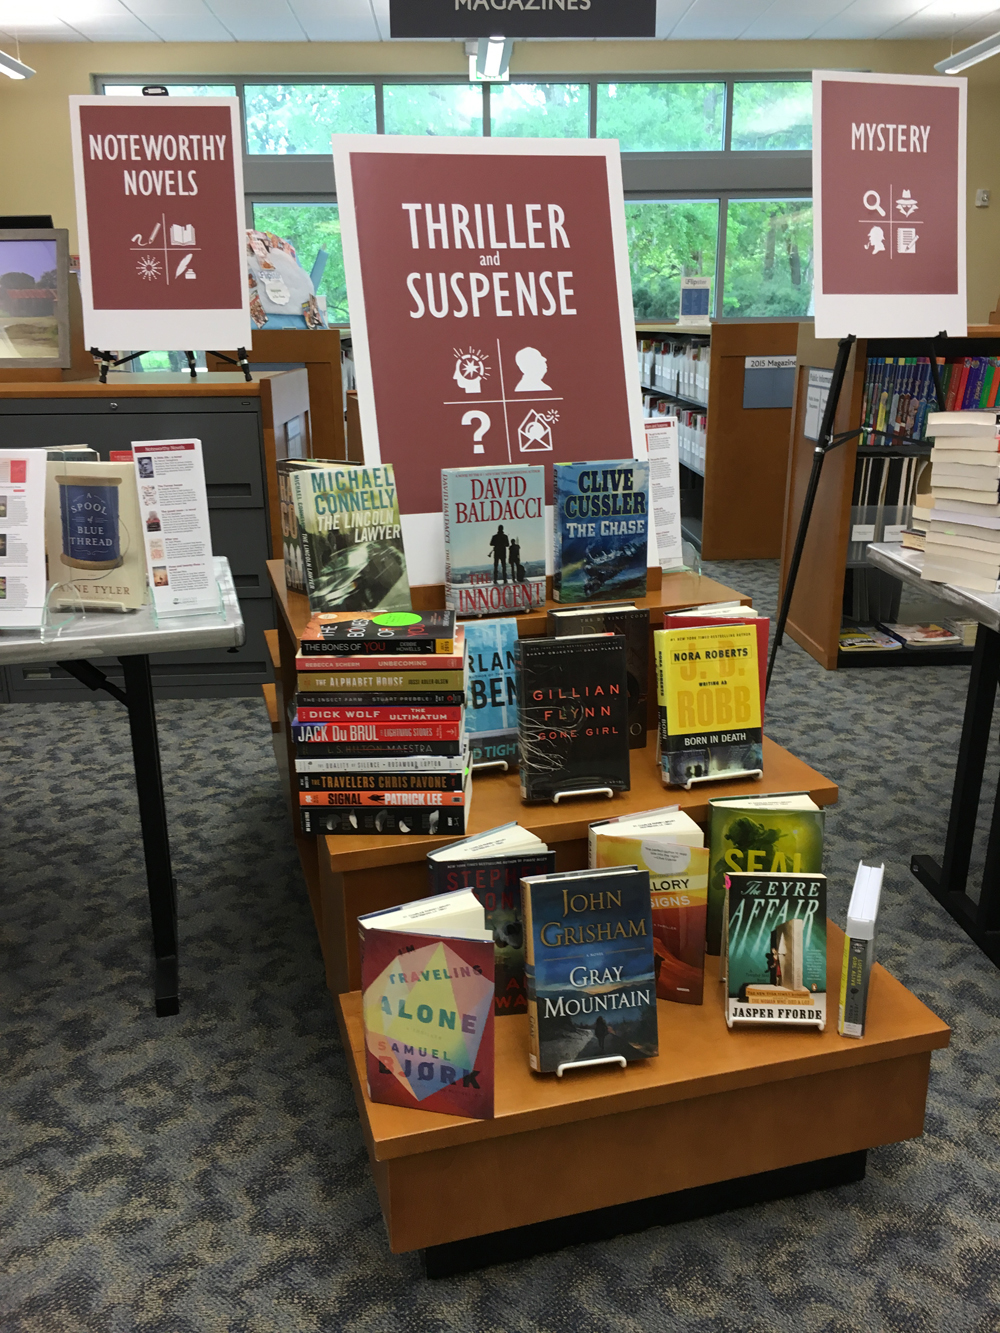 Display at SCPL